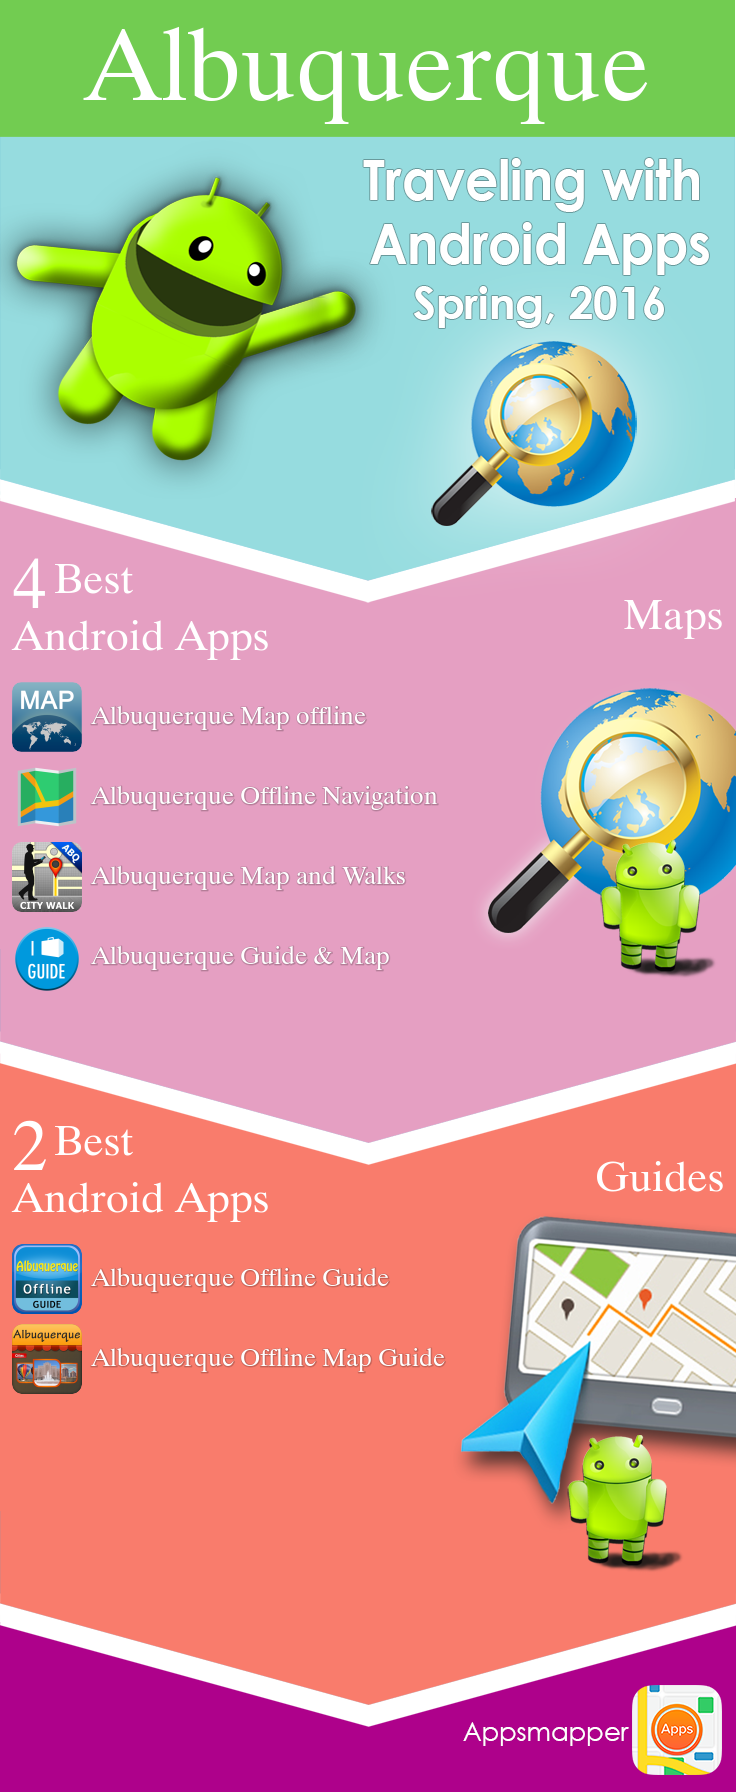 Albuquerque Android apps: Travel Guides, Maps, Transportation, Biking, Museums, Parking, Sport and apps for Students.